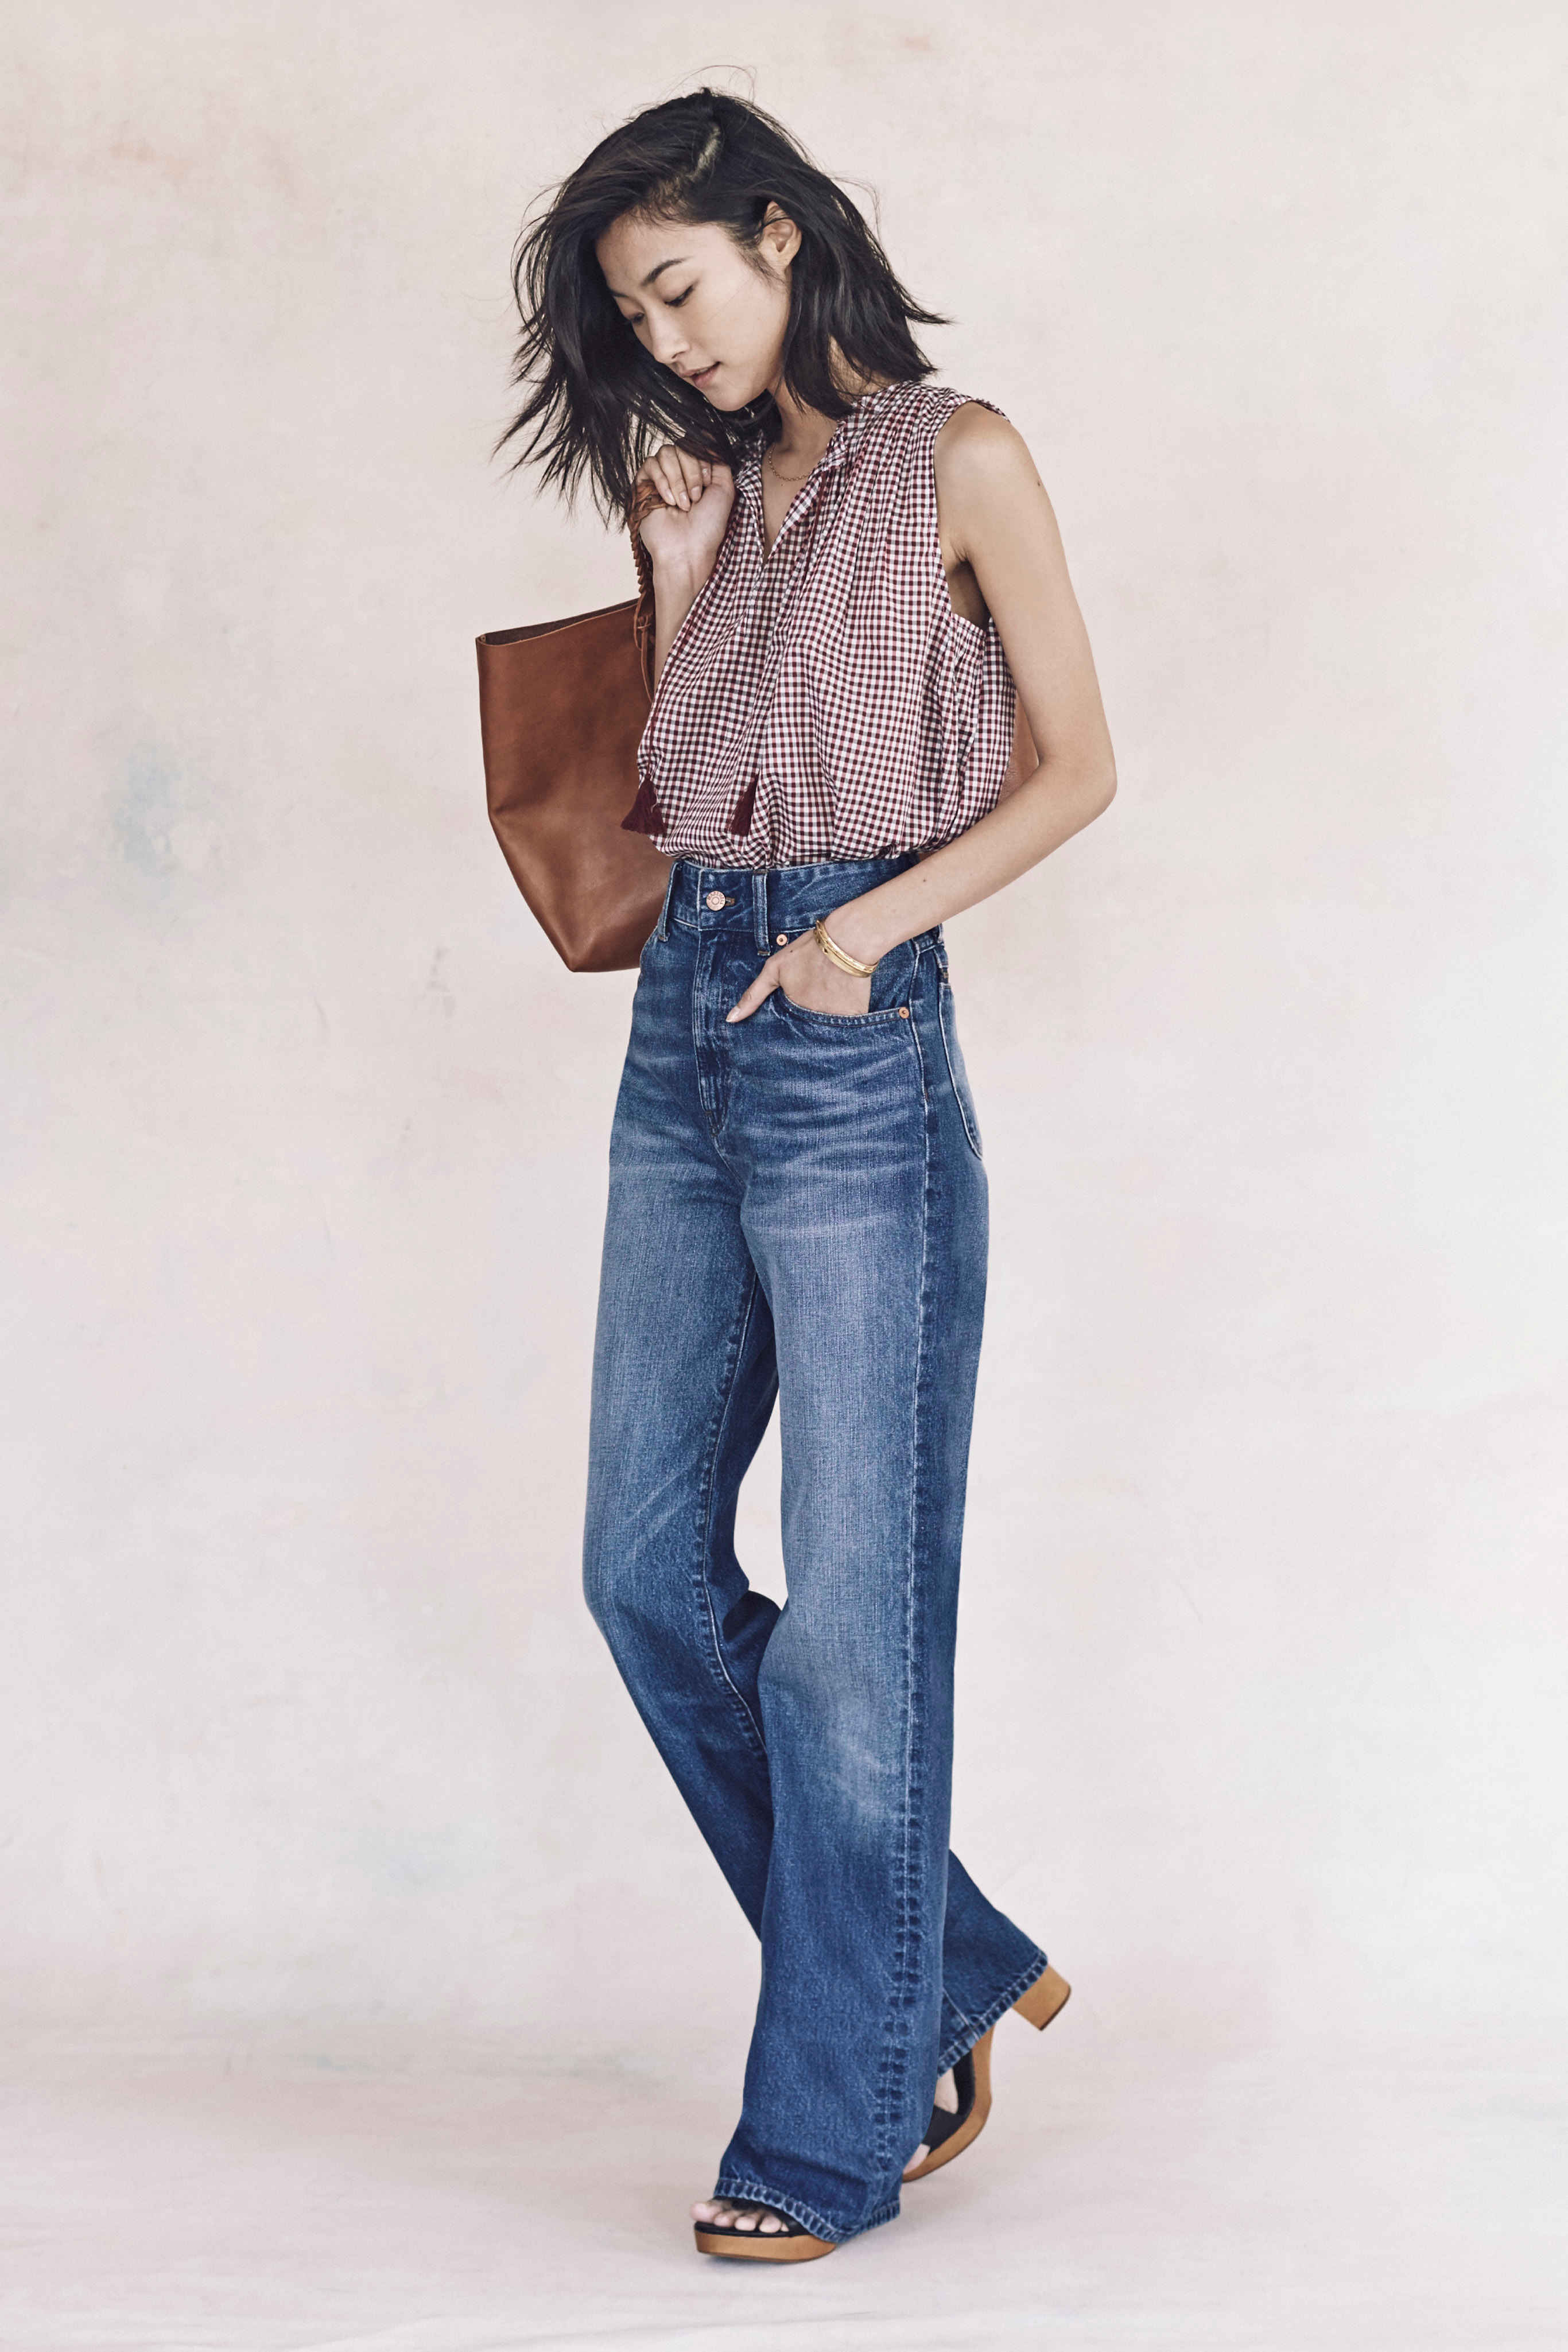 Madewell's Spring 2016 Collection | Glitter, Inc.Glitter, Inc.